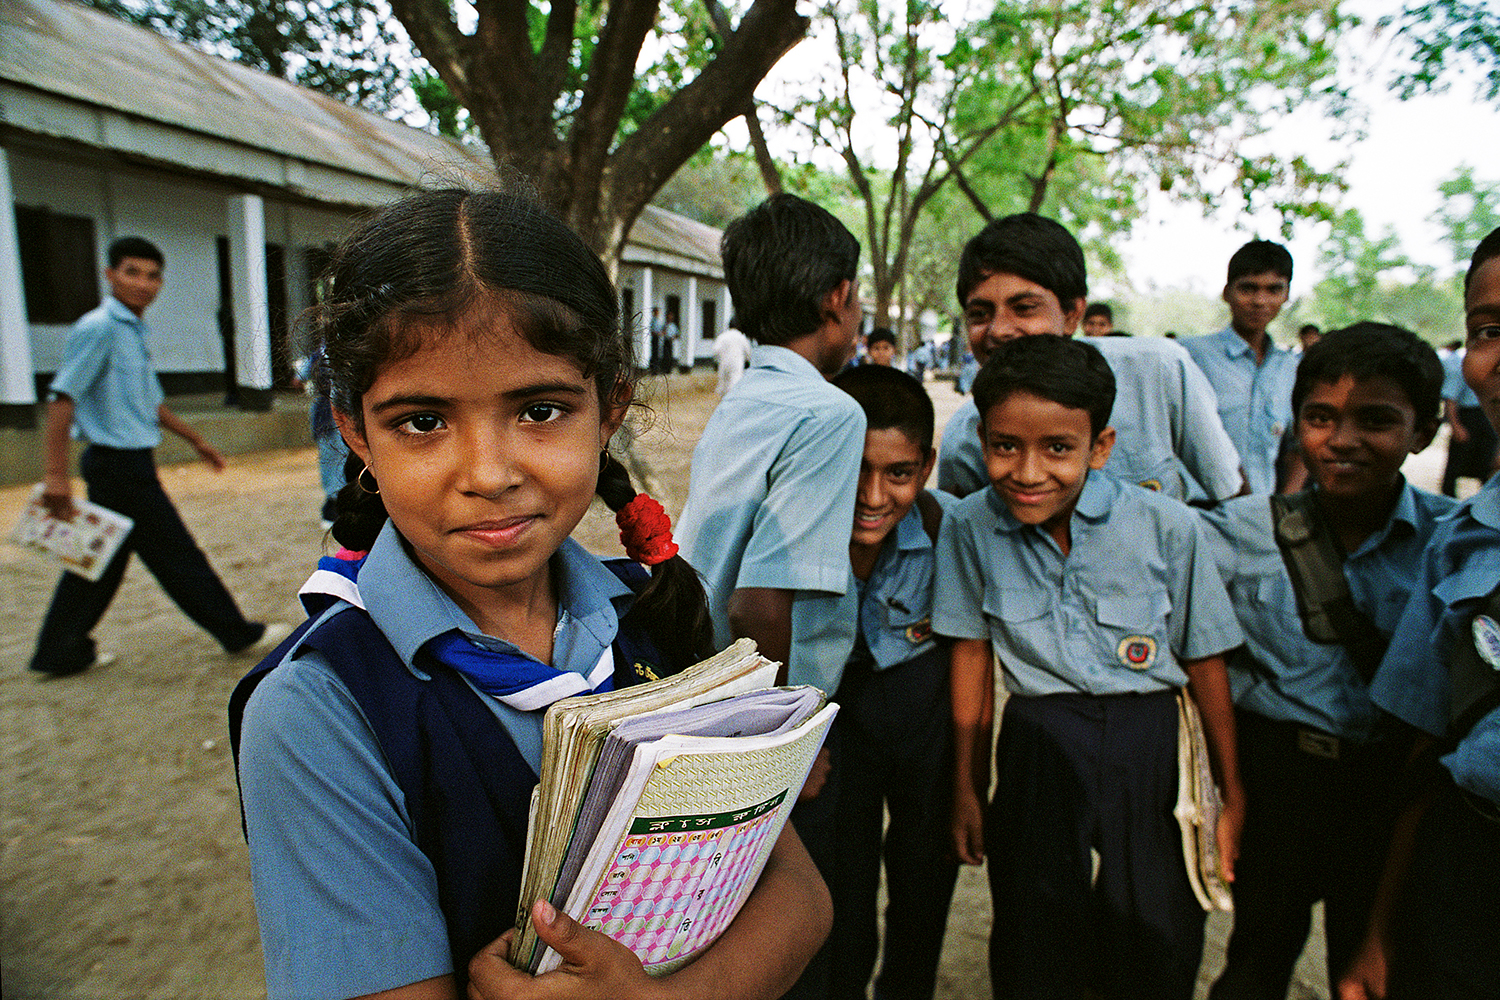 Schoolgirl teased by classmates in Gazipur, Bangladesh, 2004.